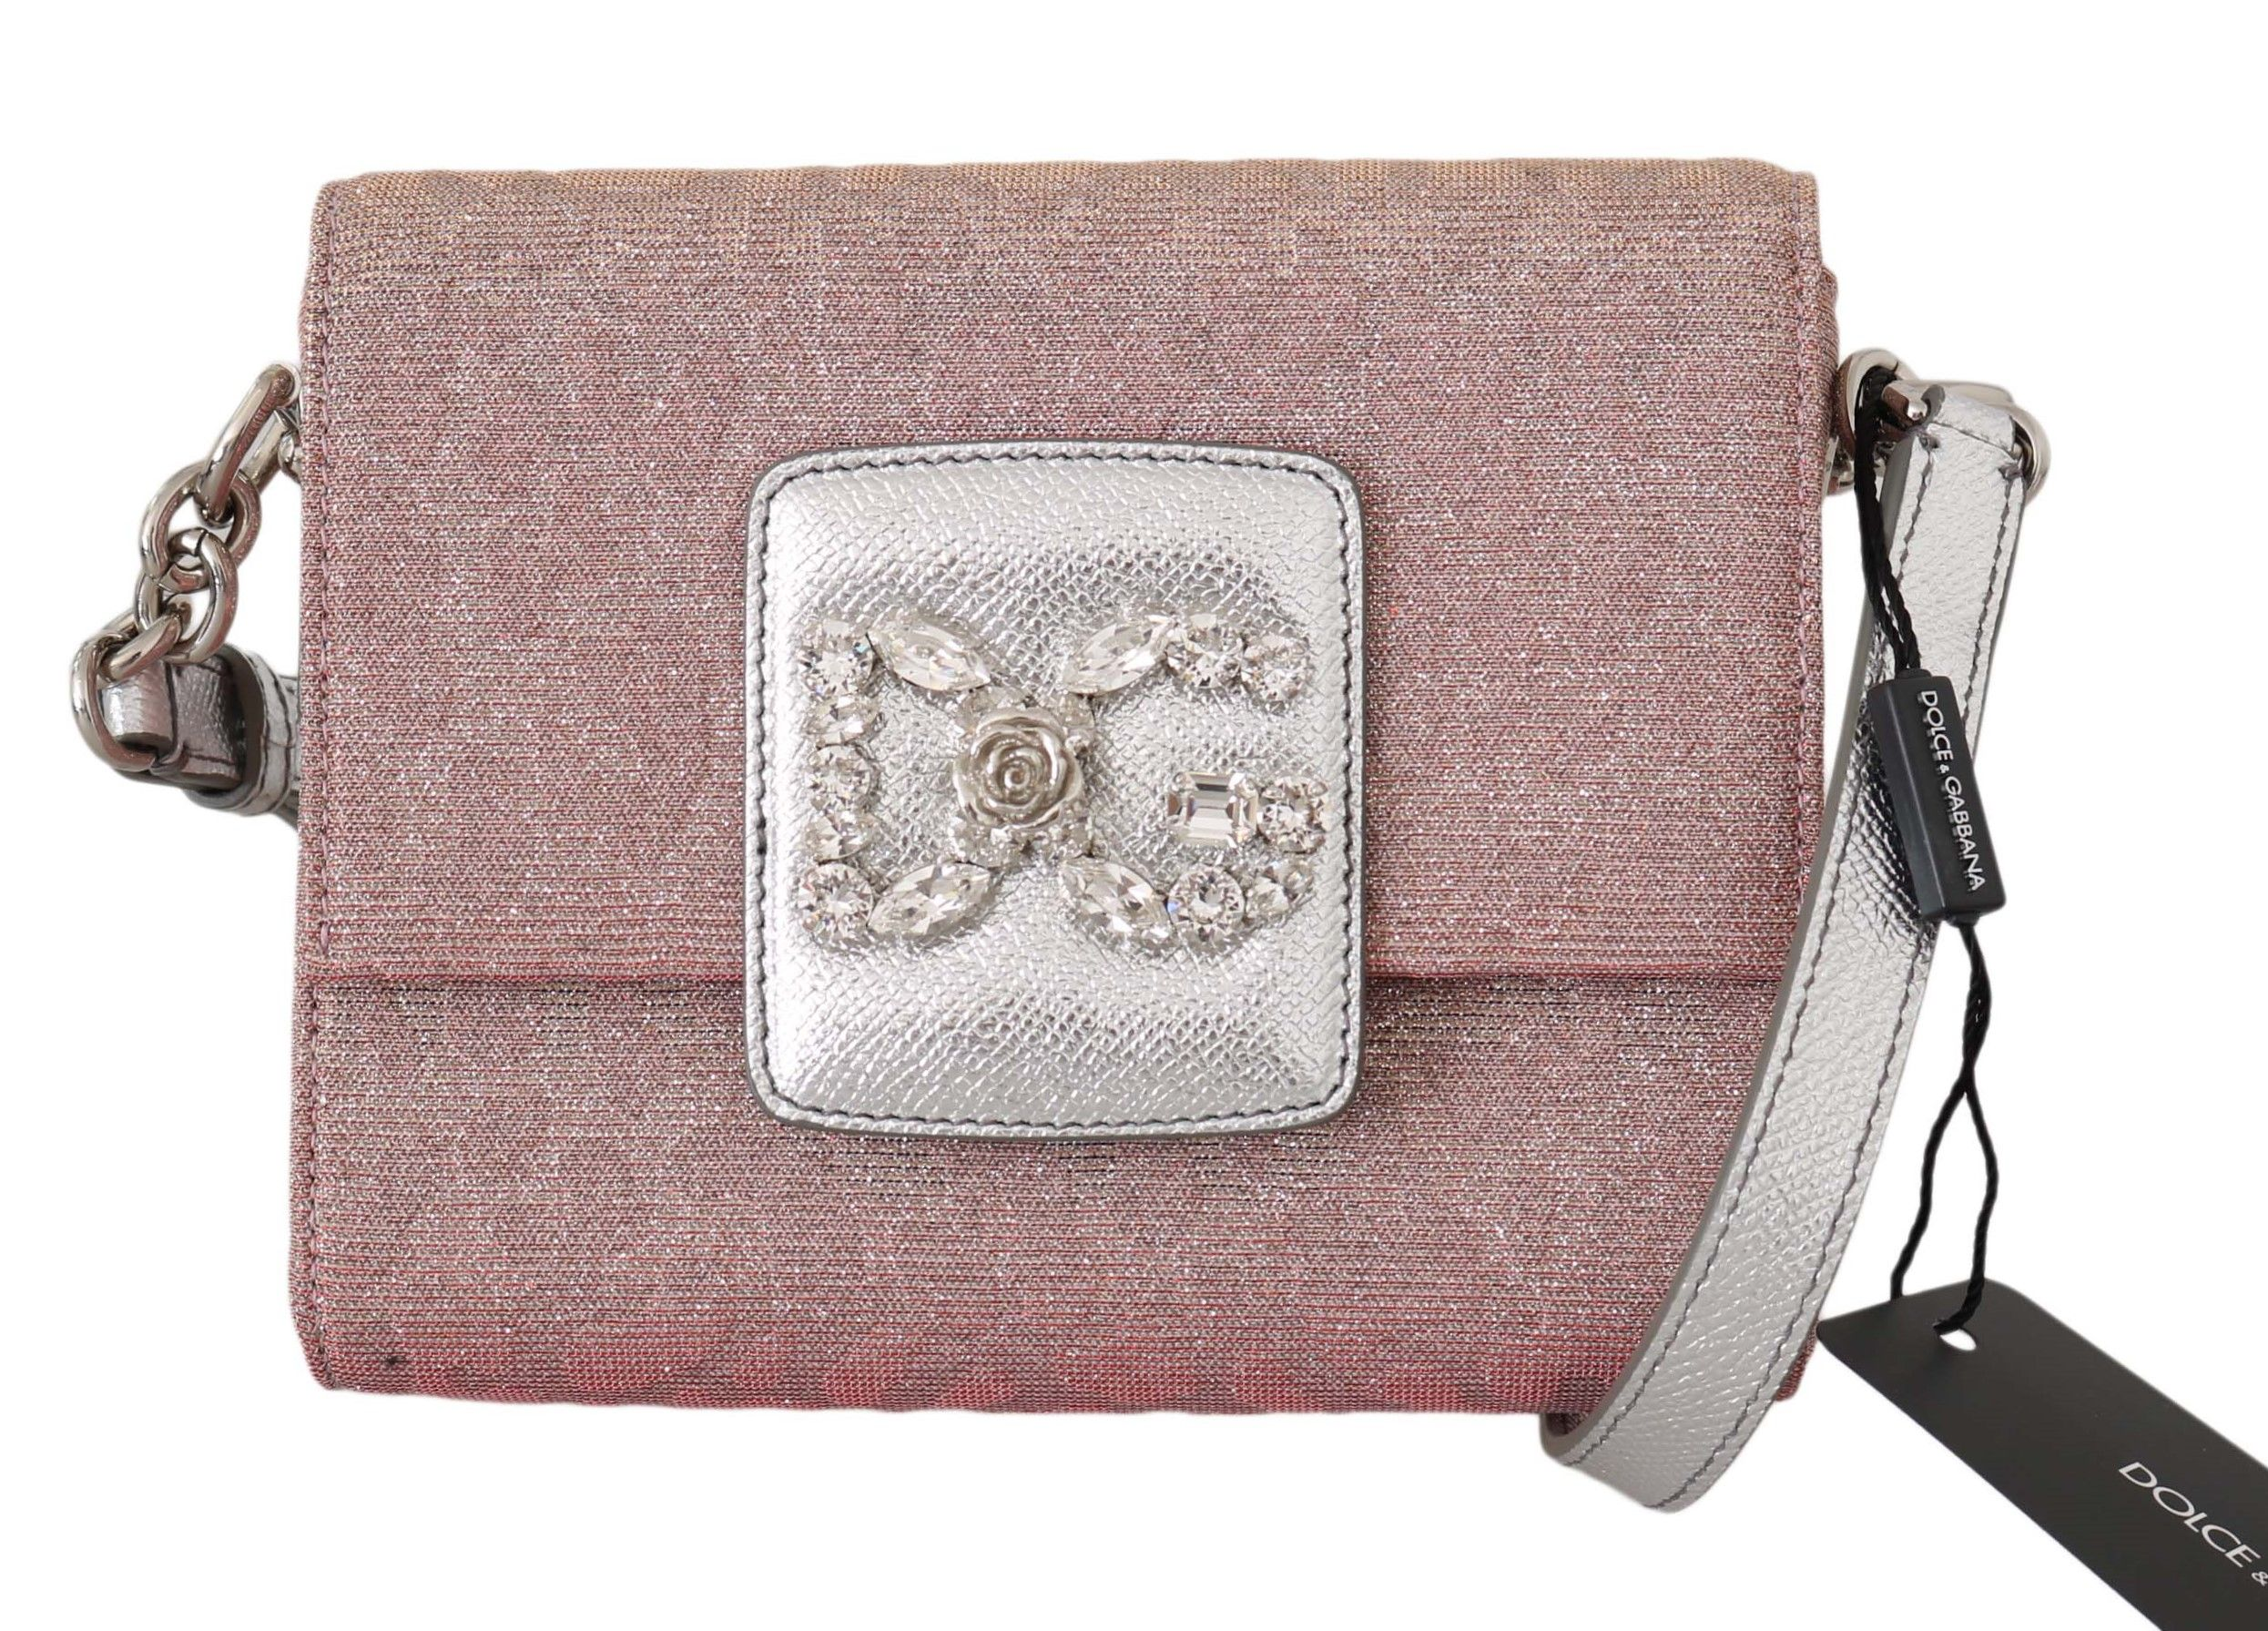 Dolce & Gabbana Pink Jacquard Crystal Millennials Shoulder Purse